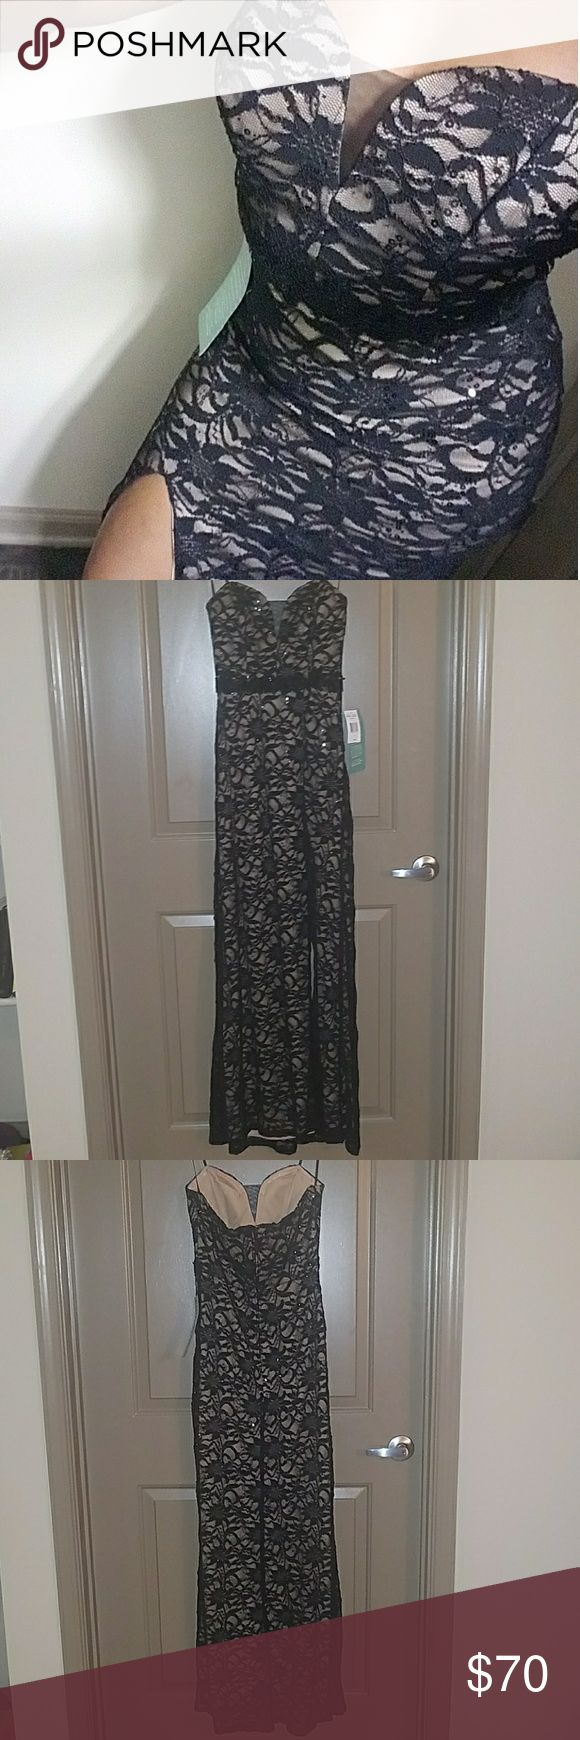 """Black Lace and Nude Dress, NWT Sz 7 Gorgeous gown by B. Smart Juniors size 7, can fit women's size 4 or 6 Black with nude lining  Strapless with rubber inner for no slip  Lace with sequins throughout dress, corset top with sheer lining on chest & beautifully embroidered waist. Thigh high split Approx. measurements - bust: 14"""", waist - 12"""", length: 52"""", split - 27.5"""" high Brand new with tags This dress is HOT!!! B. Smart Dresses Strapless"""